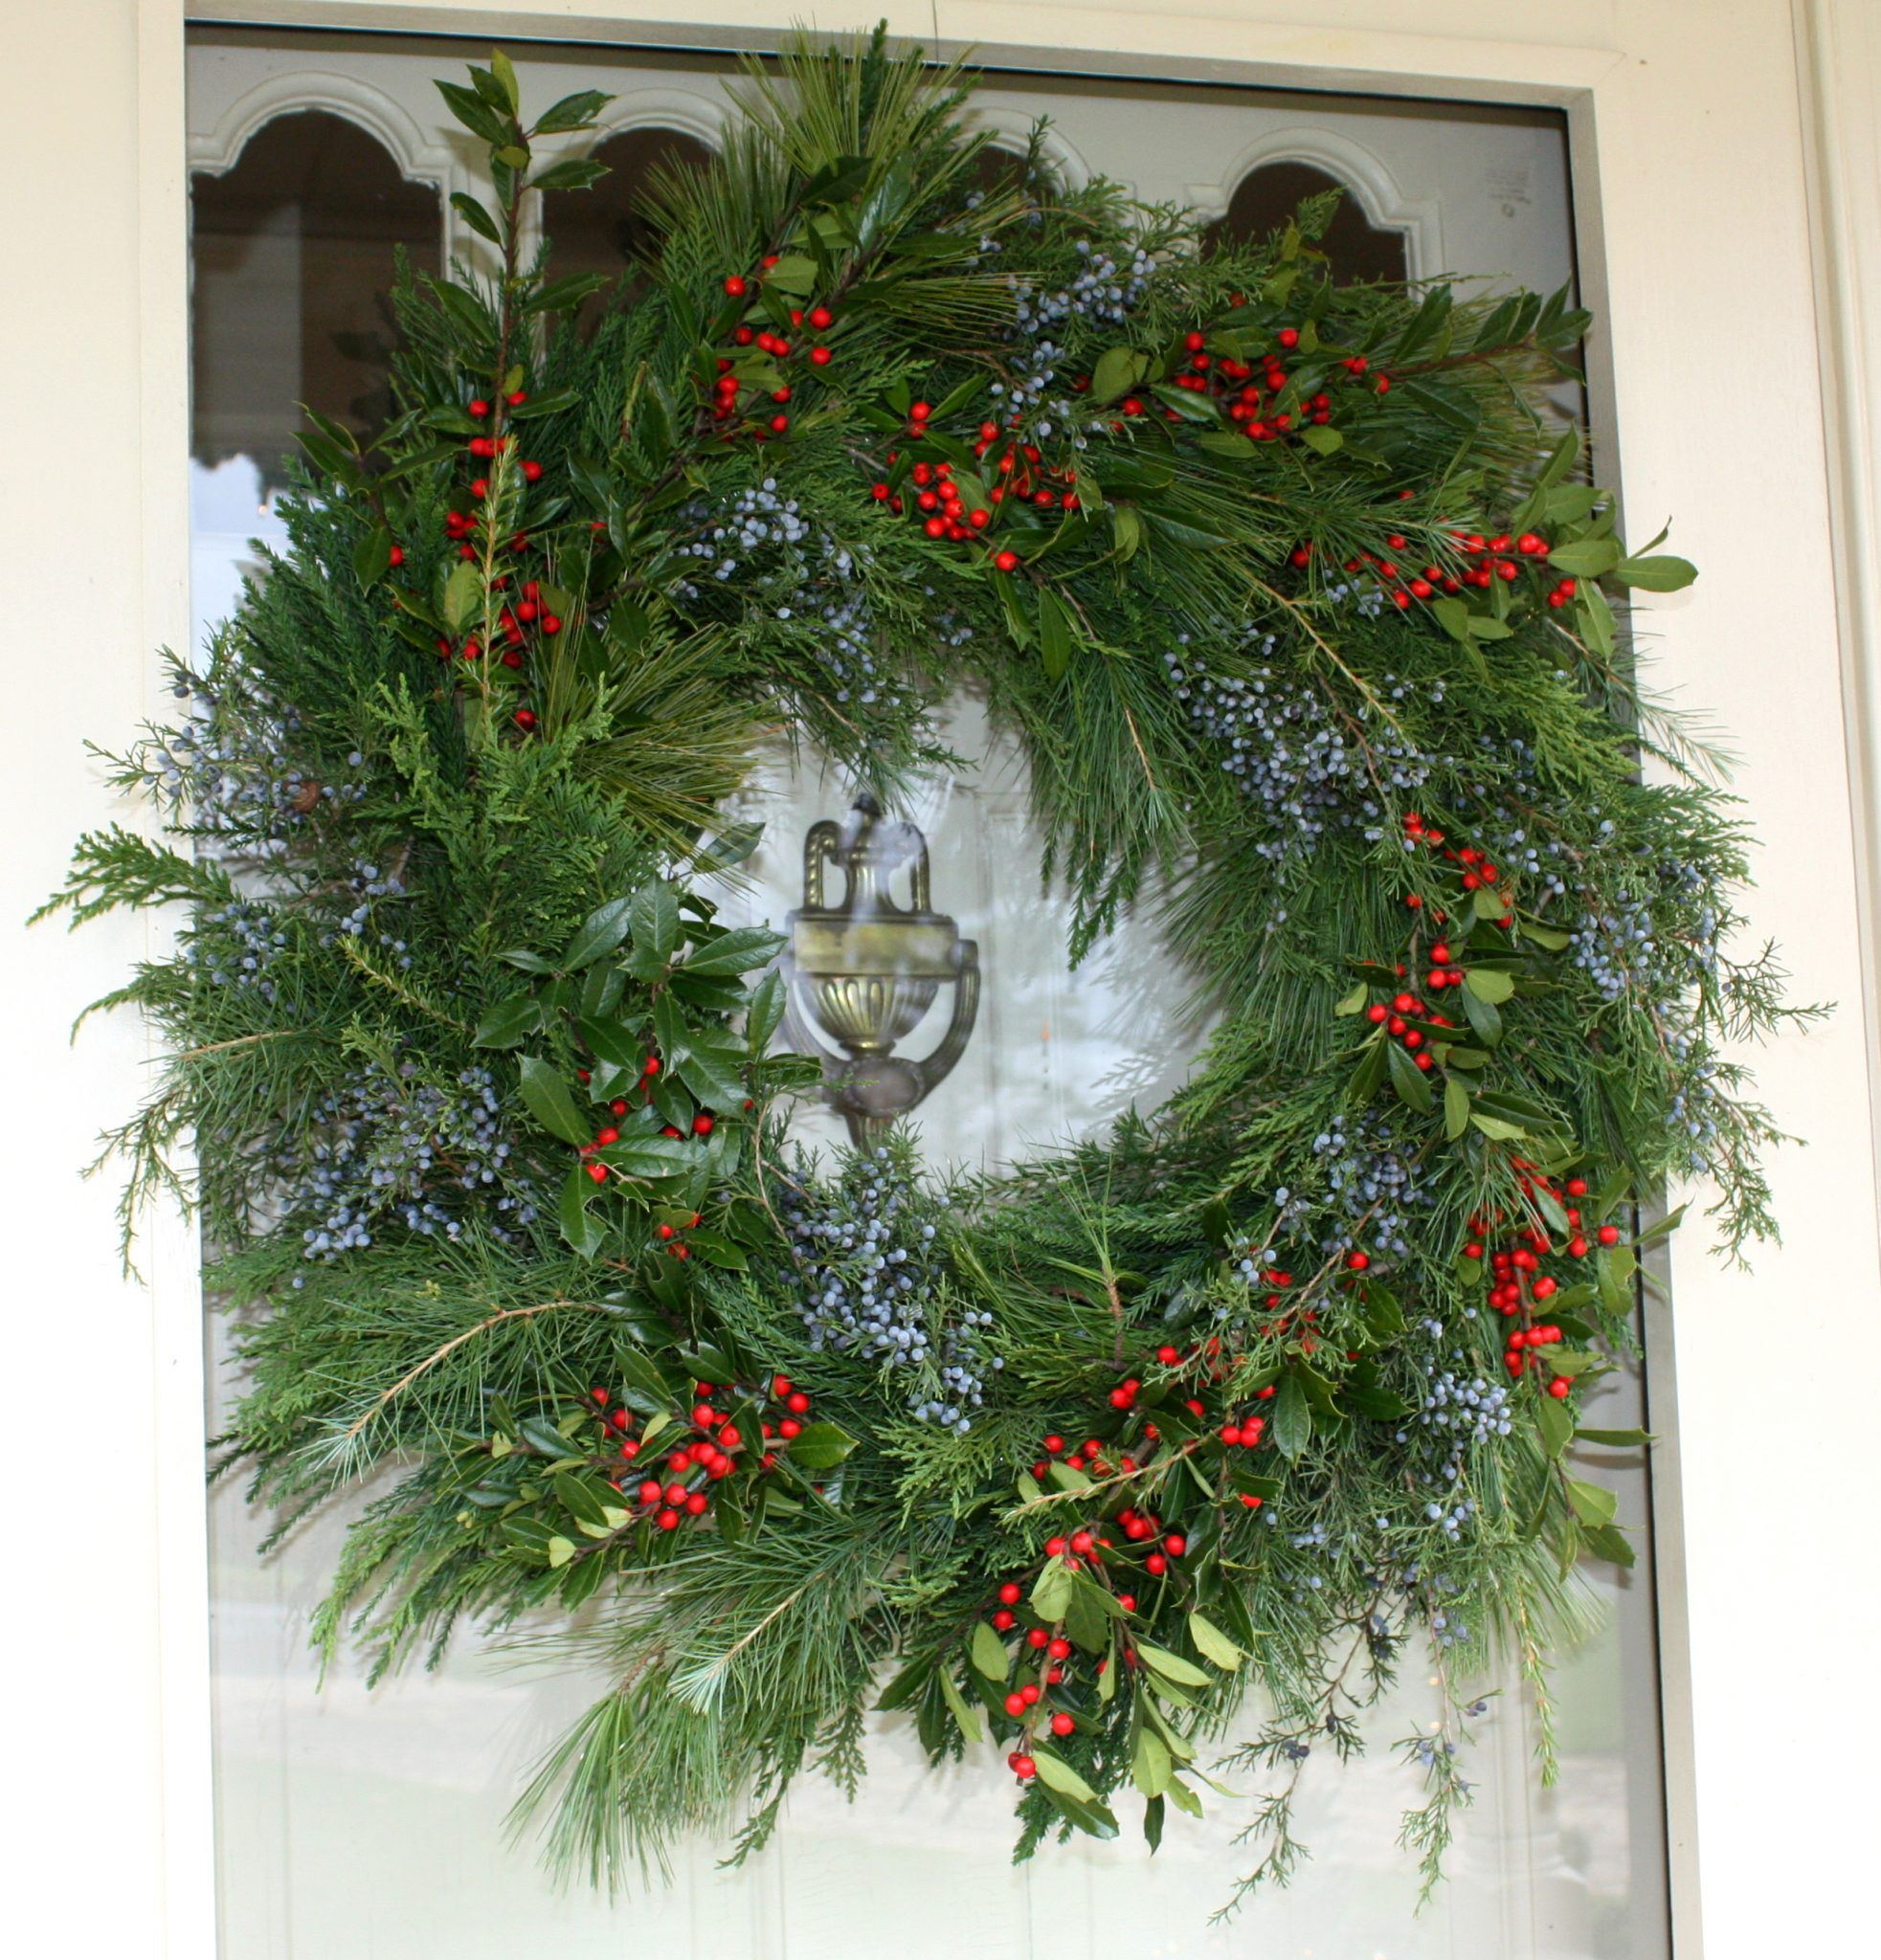 Handmade live greenery Christmas wreath.